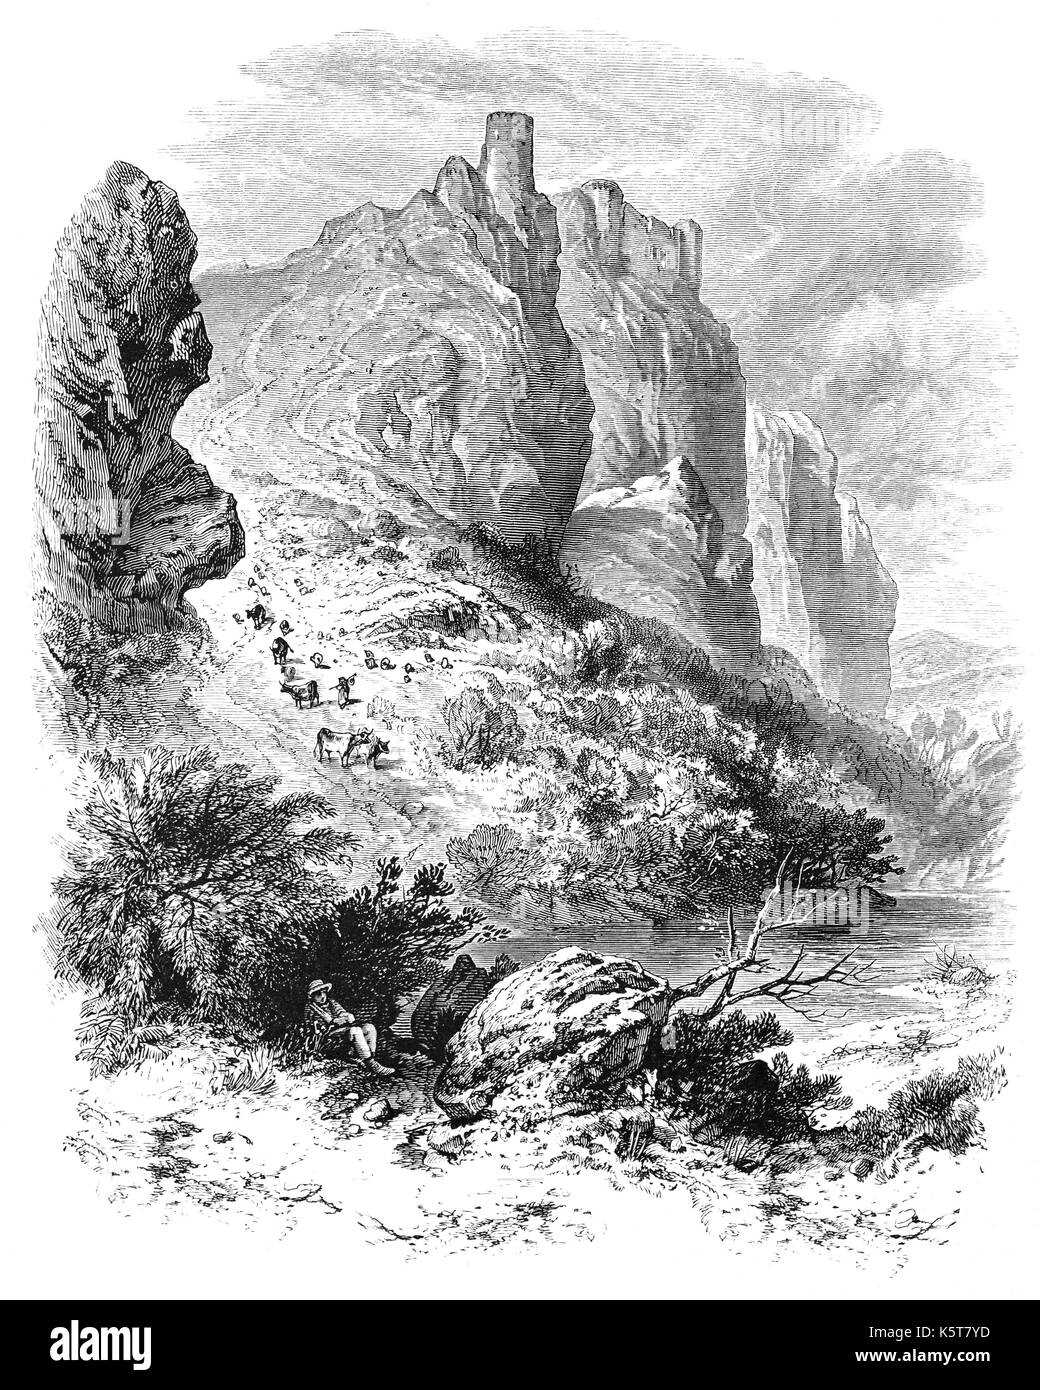 1870: Carreg Cennen Castle positioned above a limestone precipice is near the River Cennen, in the village of Trap, four miles south of Llandeilo.  The first masonry castle was probably built by the Lord Rhys, who died in 1197. In 1277 it was captured by the English, recaptured by the Welsh in 1282 and in English hands again the following year. The following year Edward I granted the castle to Baron Giffard of Brimsfield, who  probably remodelled castle as it now is. Carmarthenshire, South Wales. - Stock Image